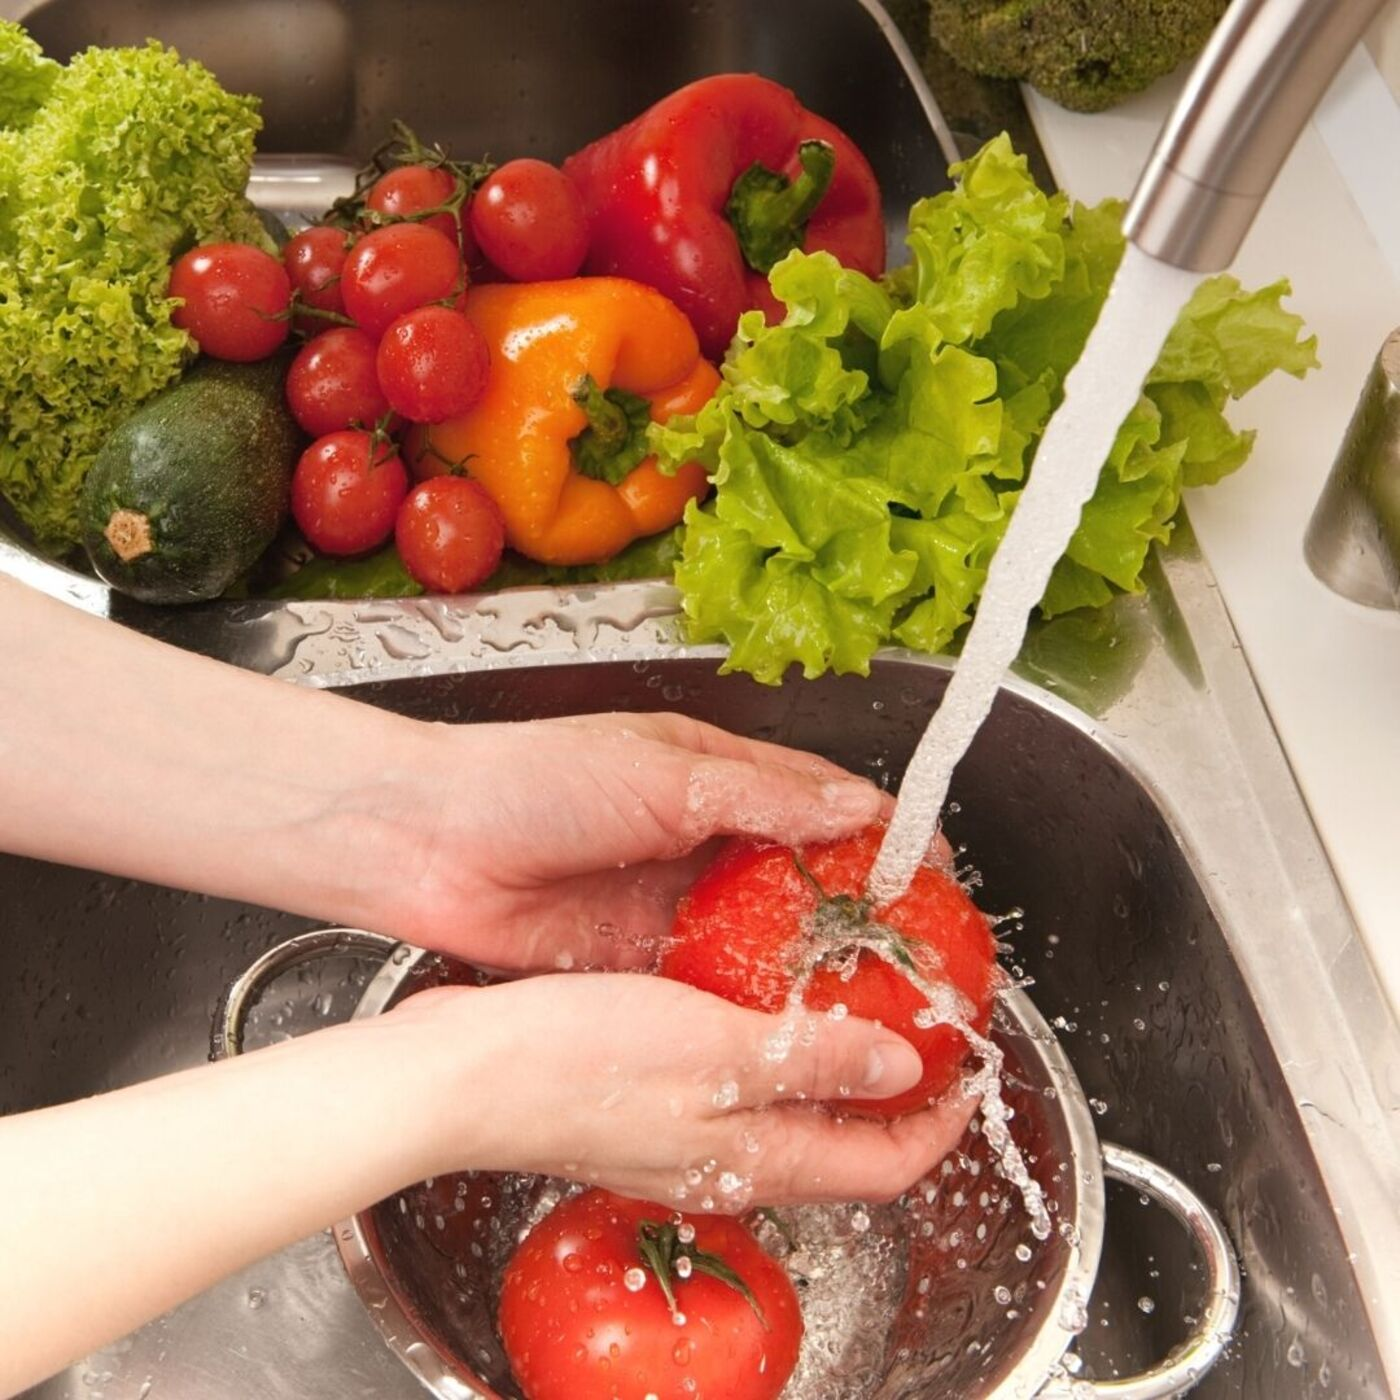 Food Safety Myths – Fact or Fiction?